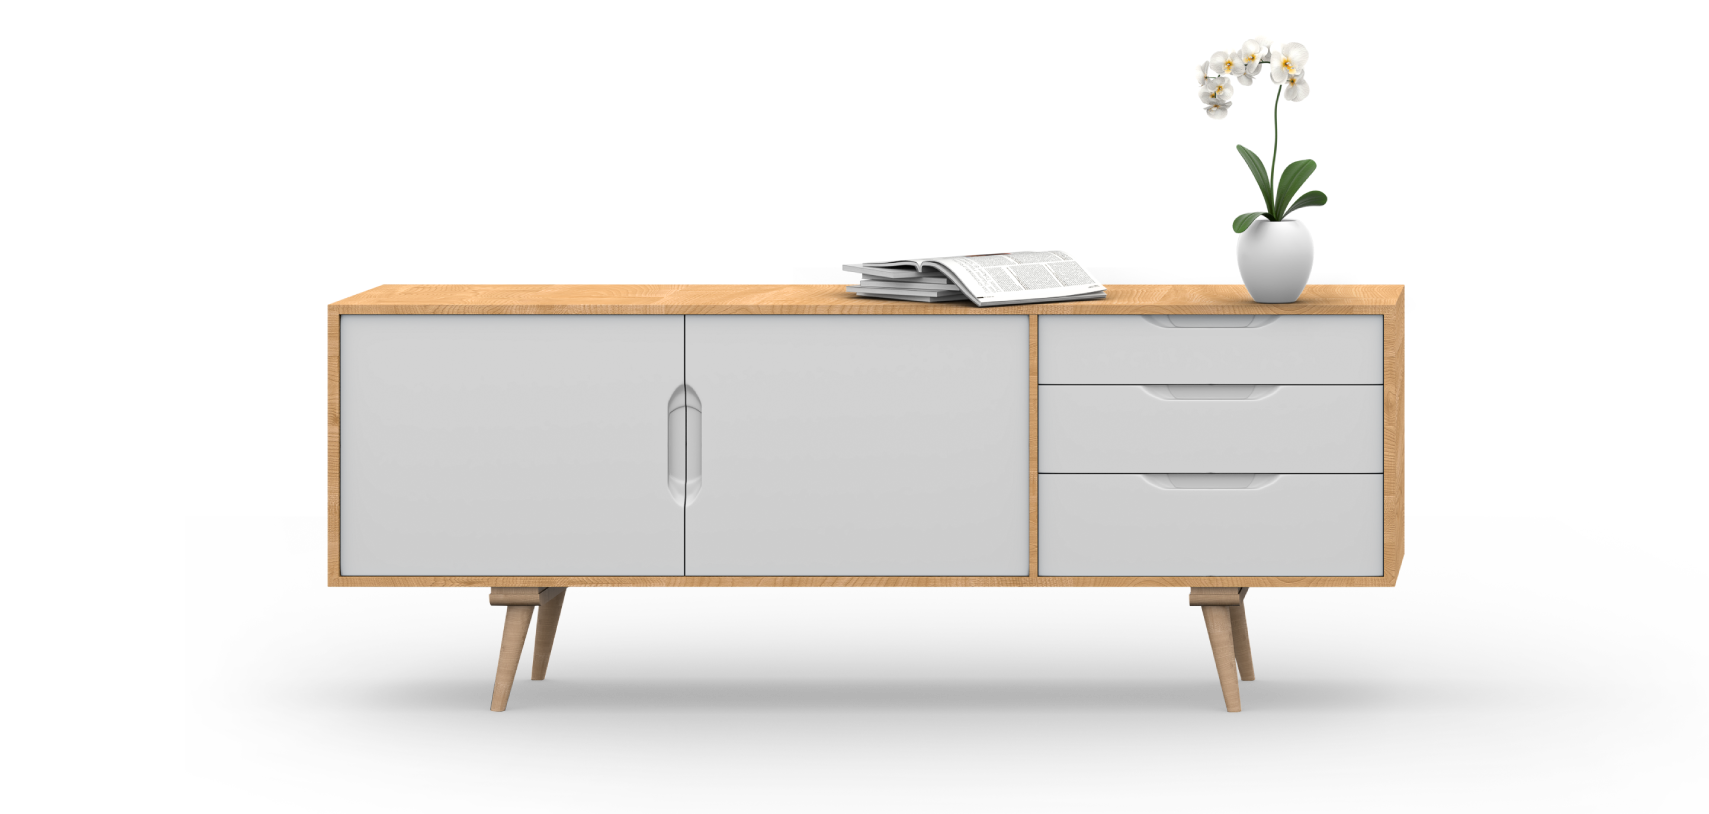 Console Table Placeholder